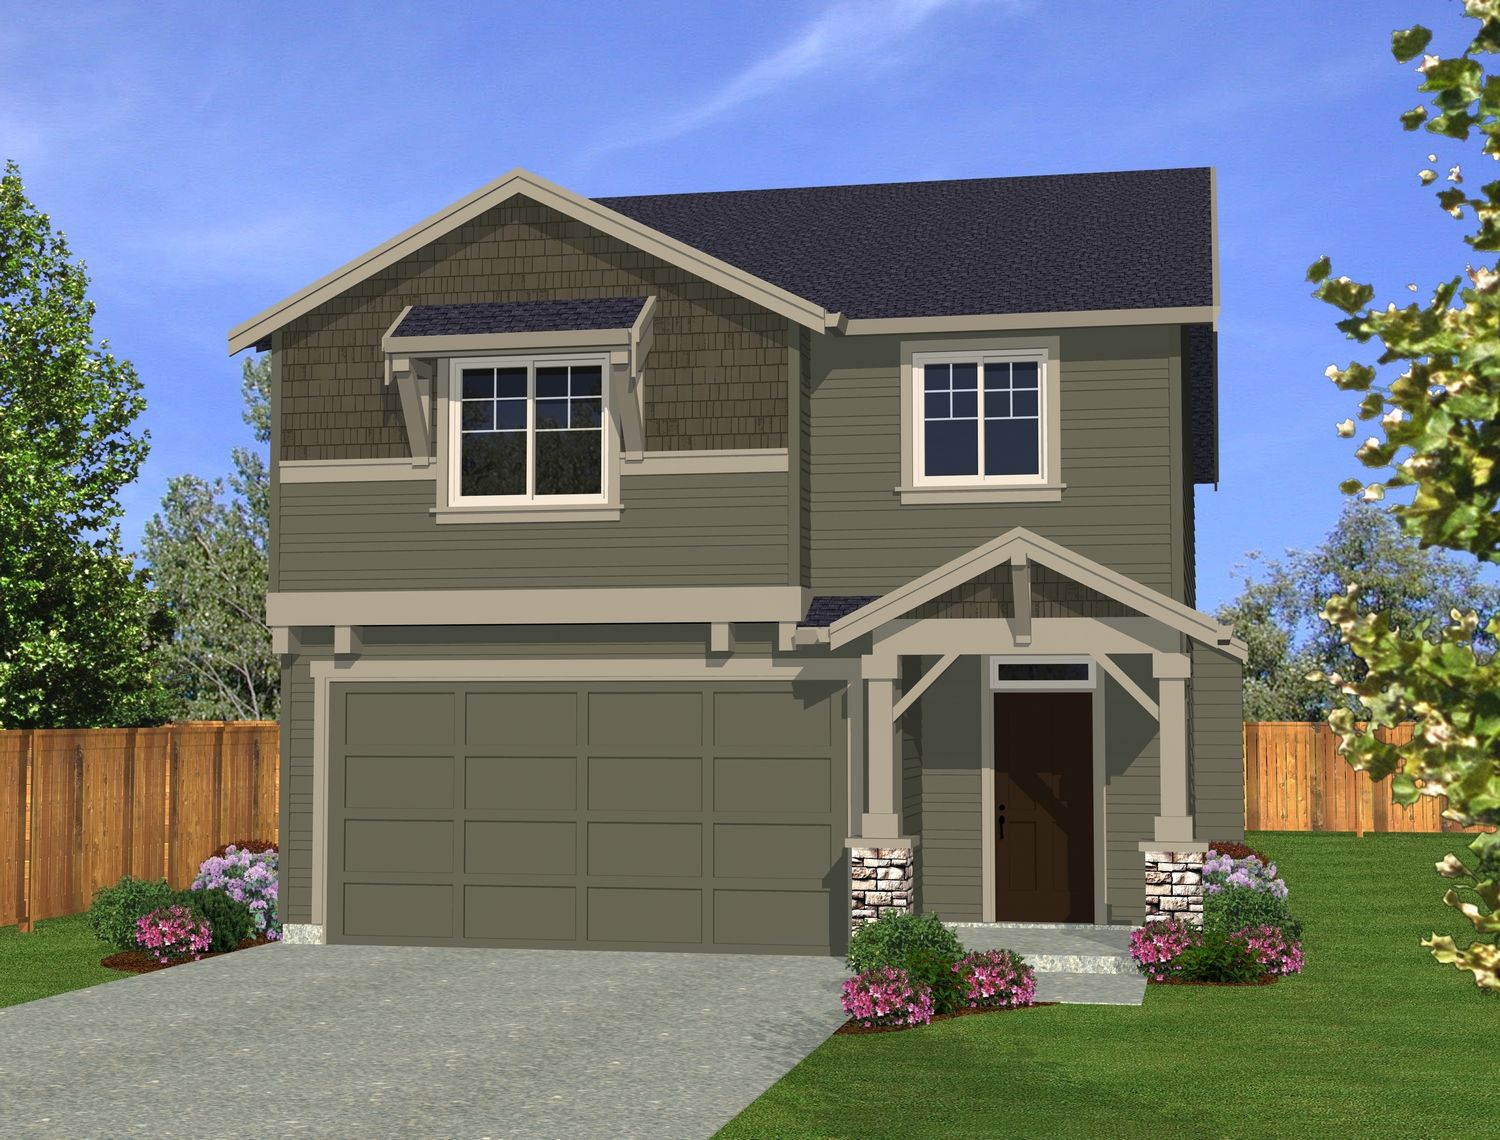 Waverly Homes, Hidden Glen, Canterbury-1163475, Vancouver, WA - New ...